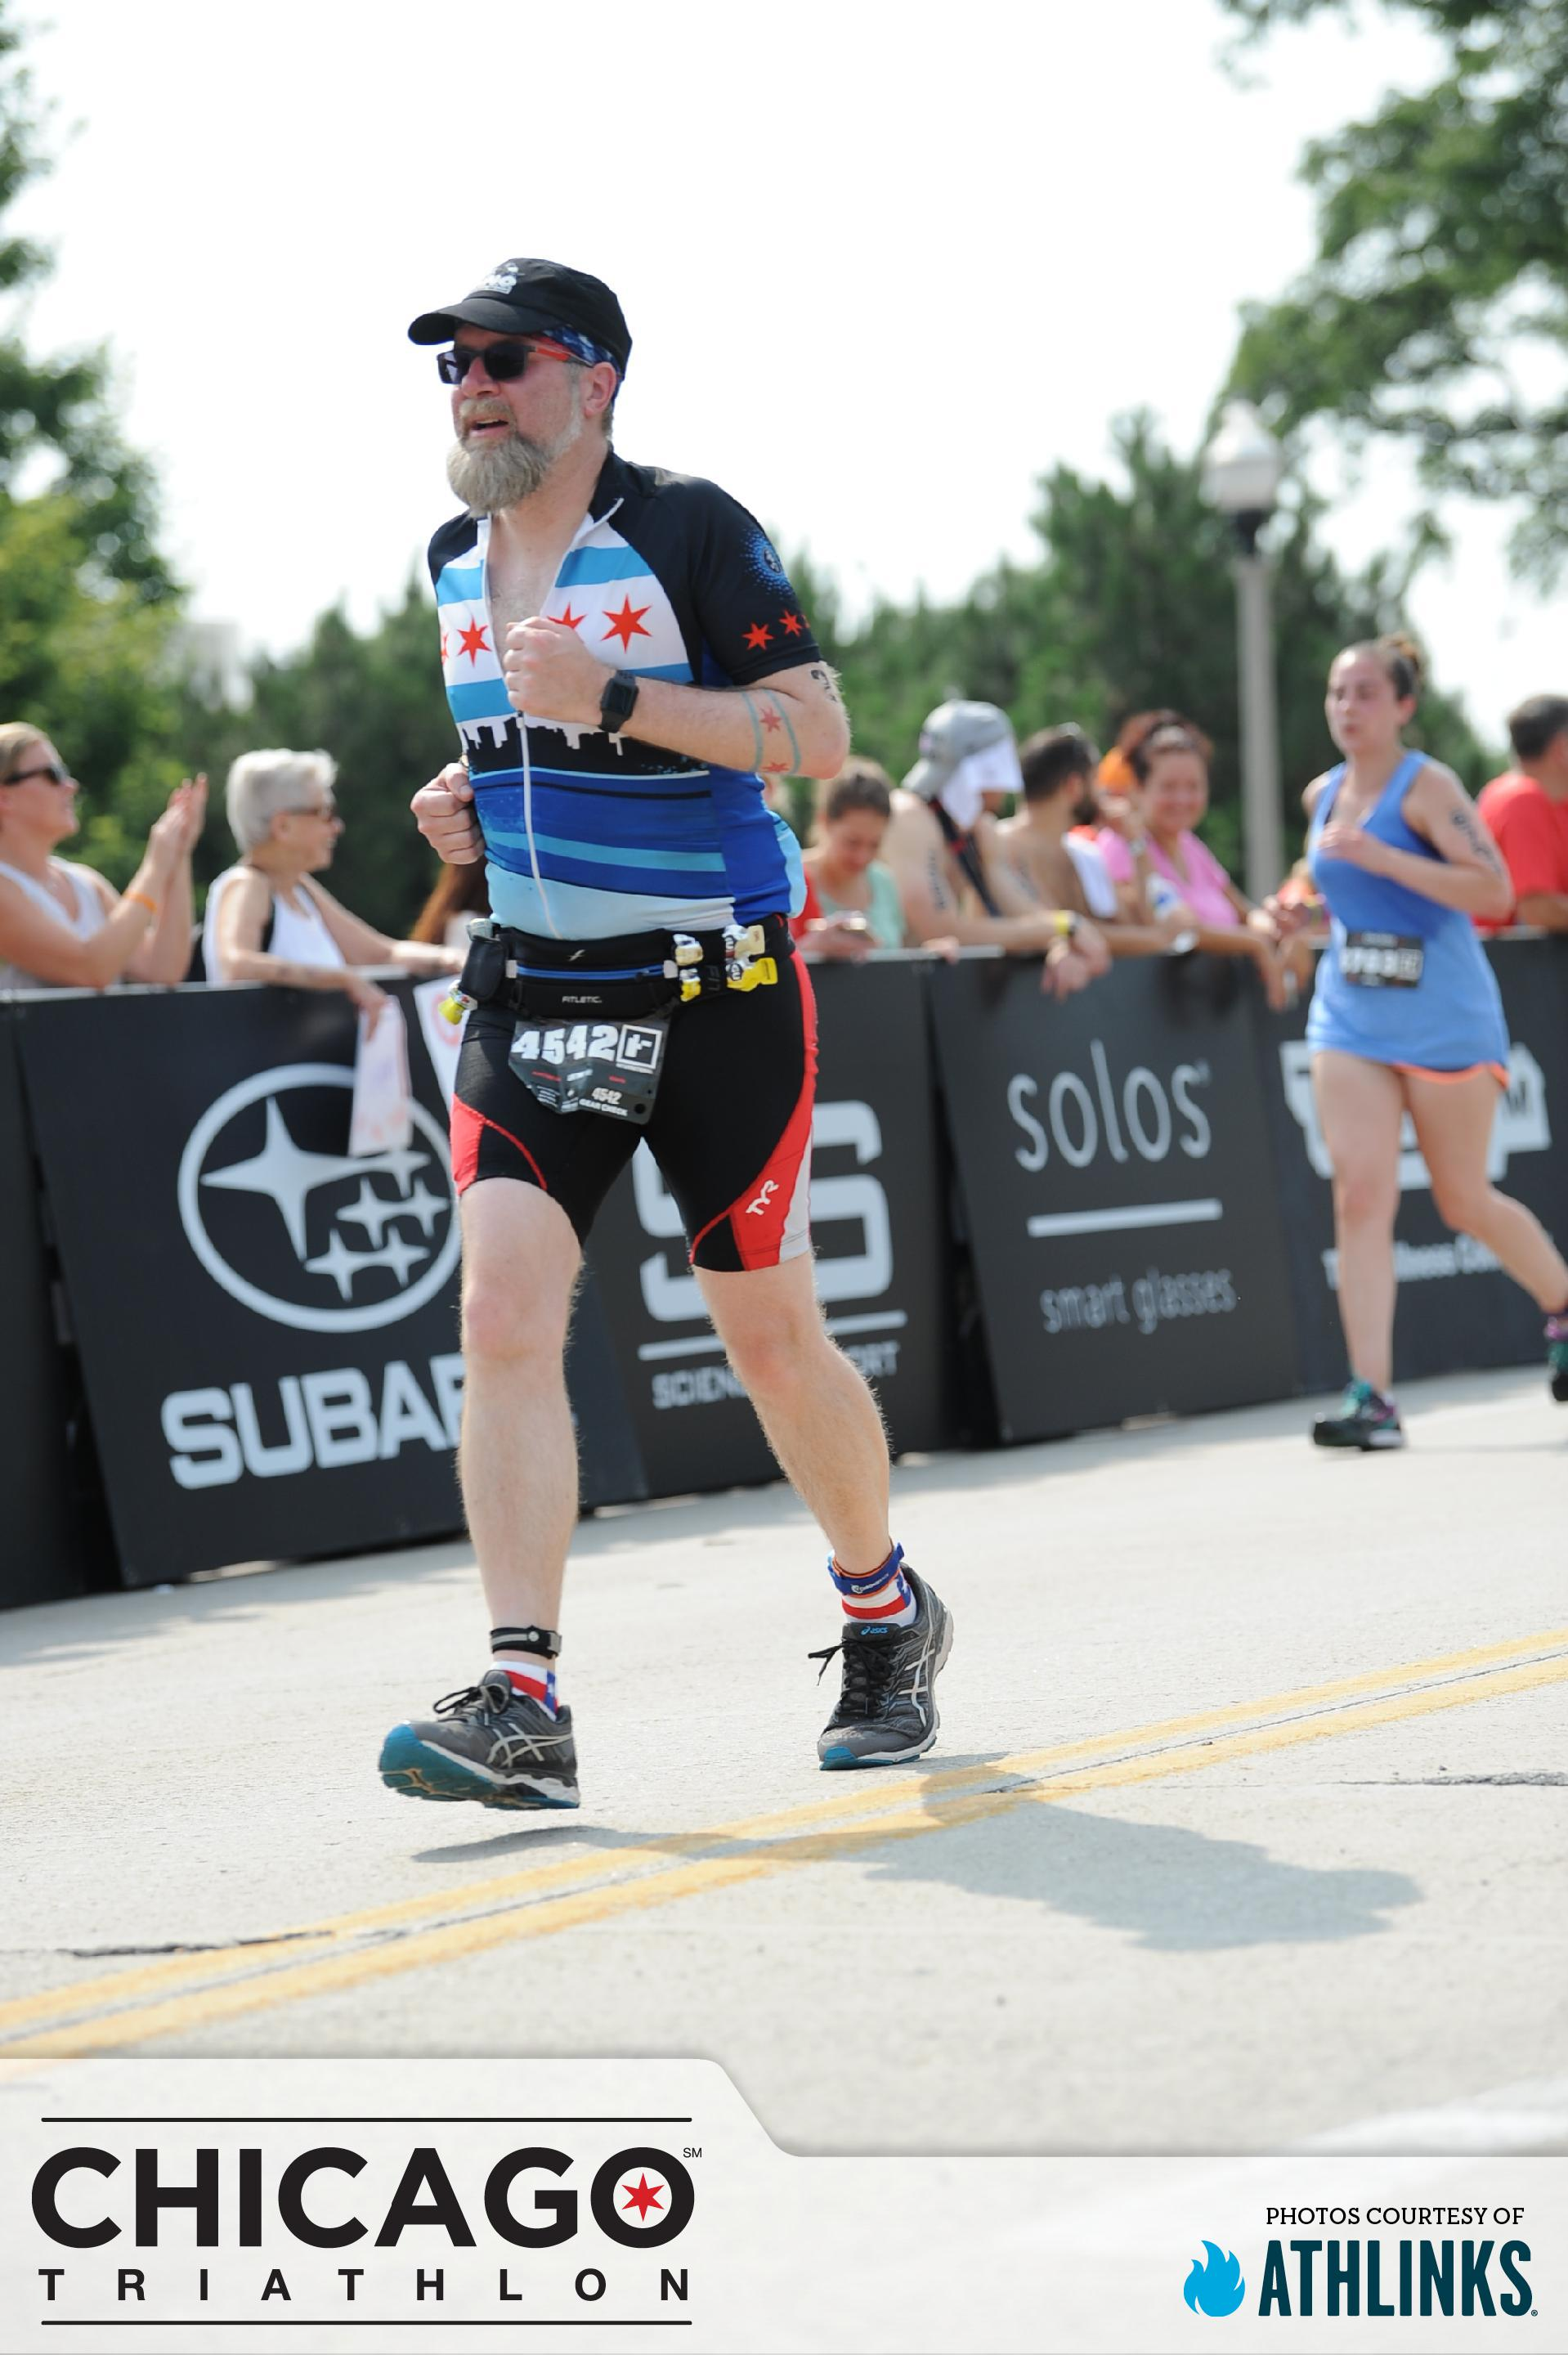 Fuzzy finishing the Chicago Triathlon